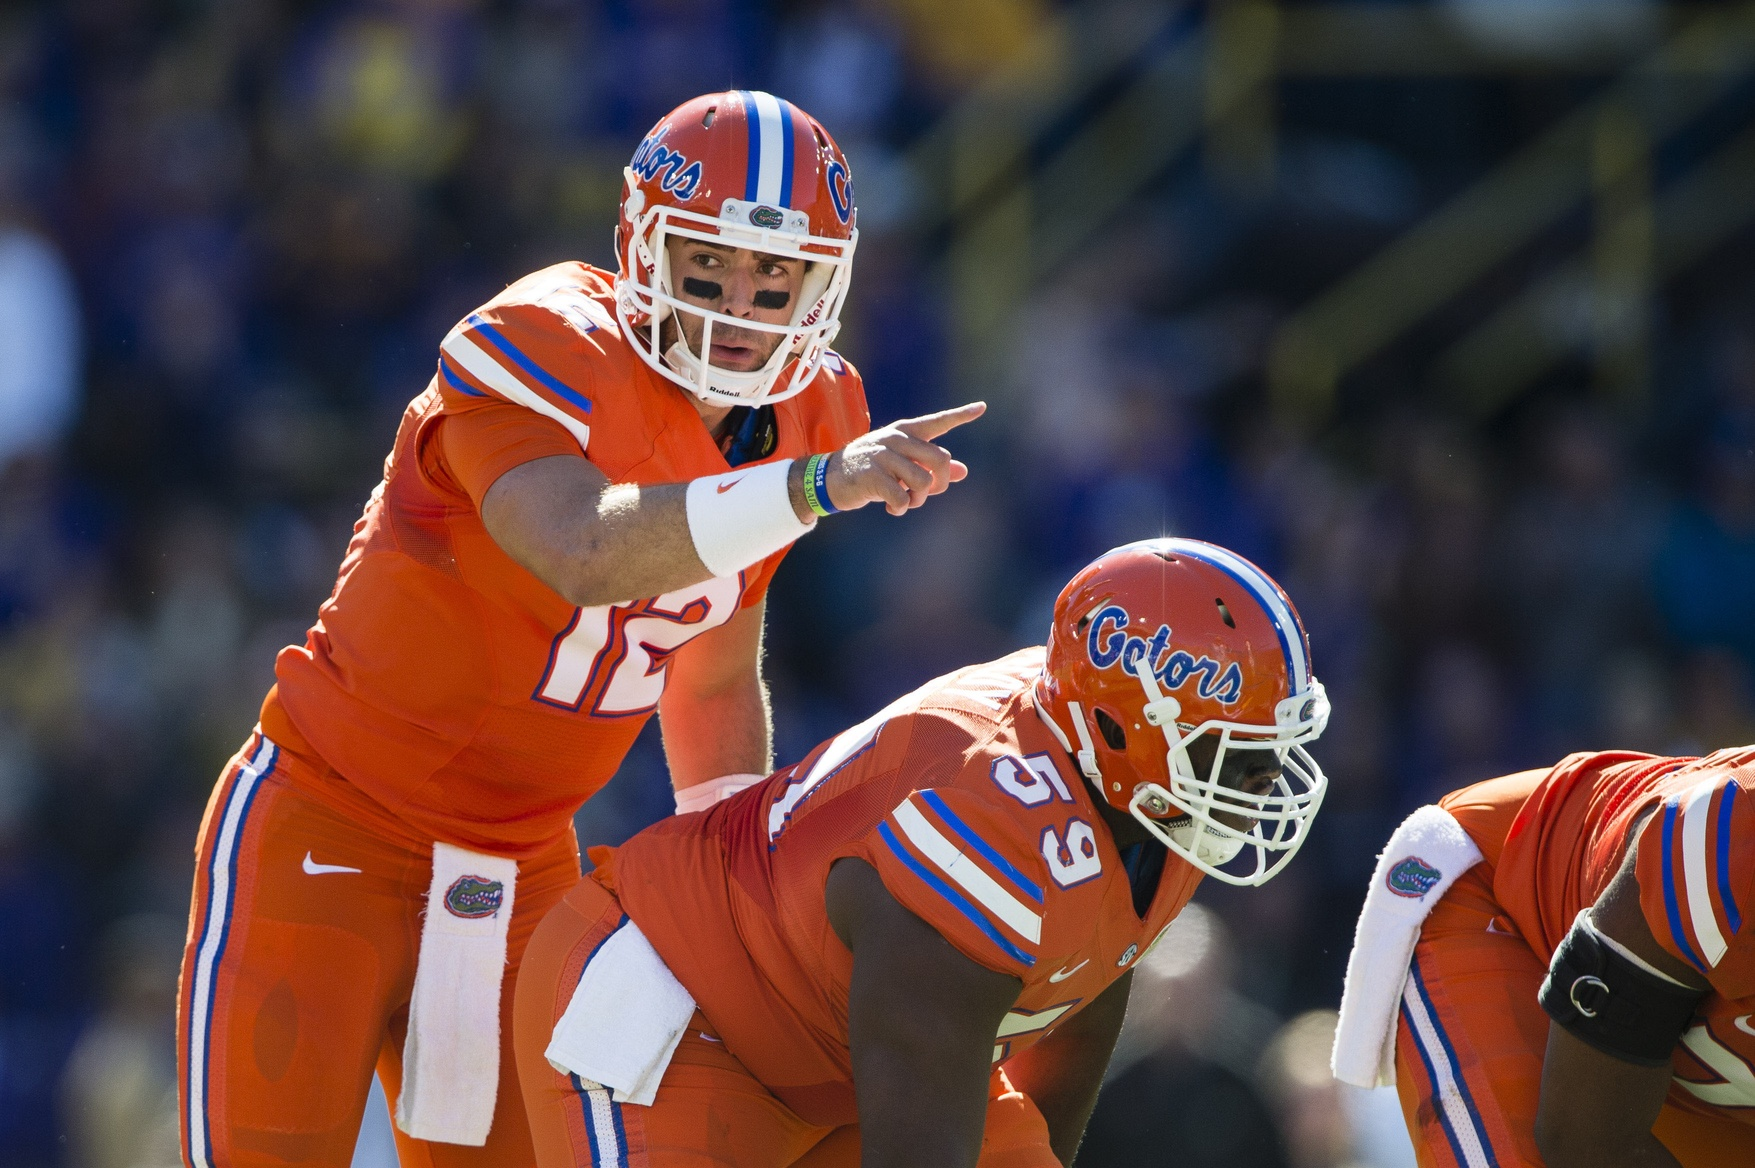 Nov 19, 2016; Baton Rouge, LA, USA; Florida Gators quarterback Austin Appleby (12) sets the play against the LSU Tigers during the first quarter at Tiger Stadium. Mandatory Credit: Jerome Miron-USA TODAY Sports